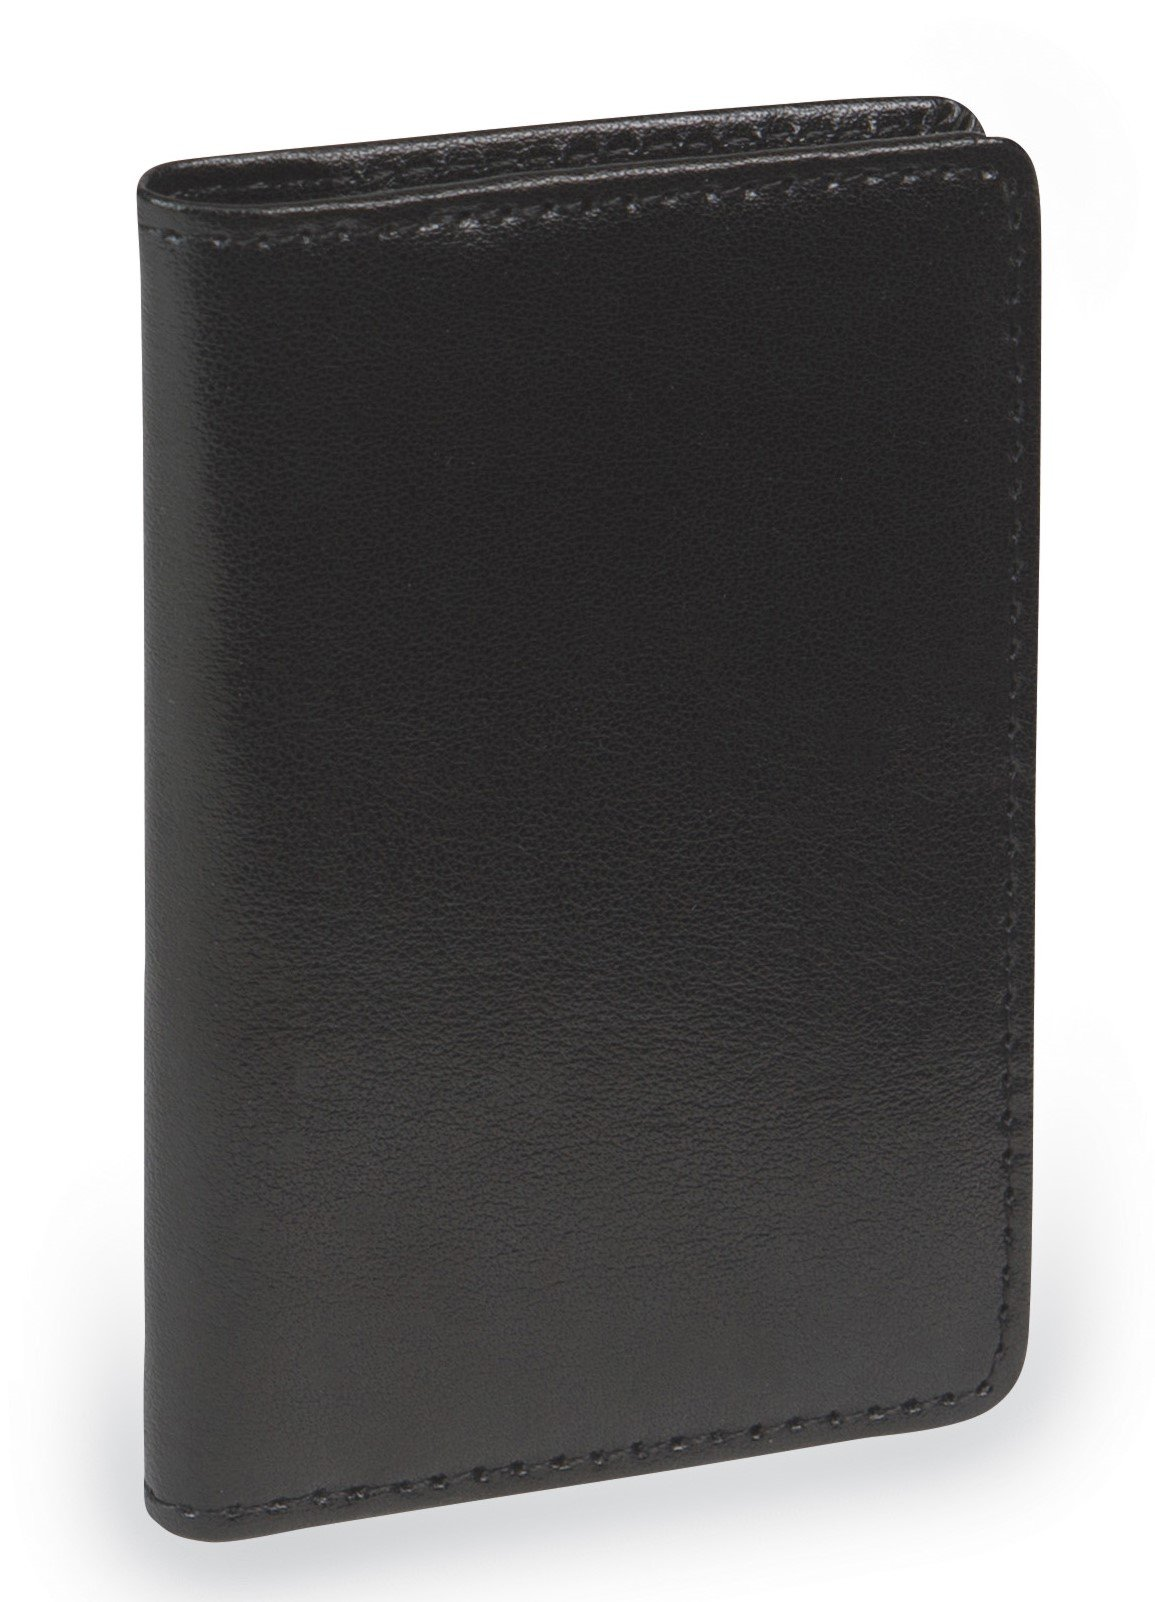 Samsill 81220 Regal Leather Business Card Holder, Case Holds 25 Business, Black